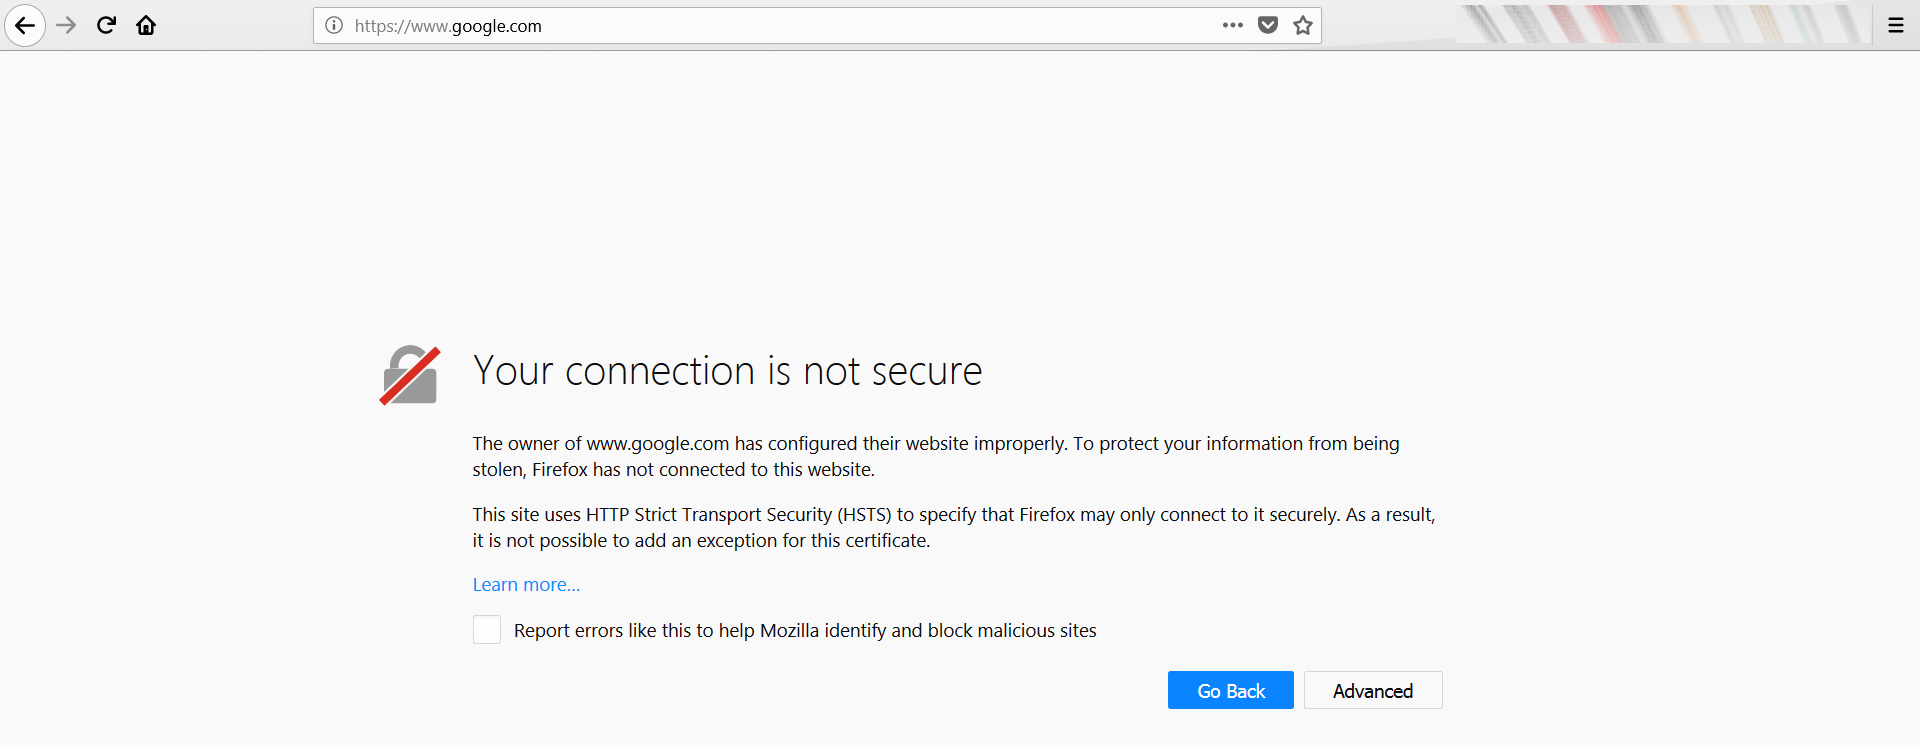 Firefox warning - Your connection is not secure